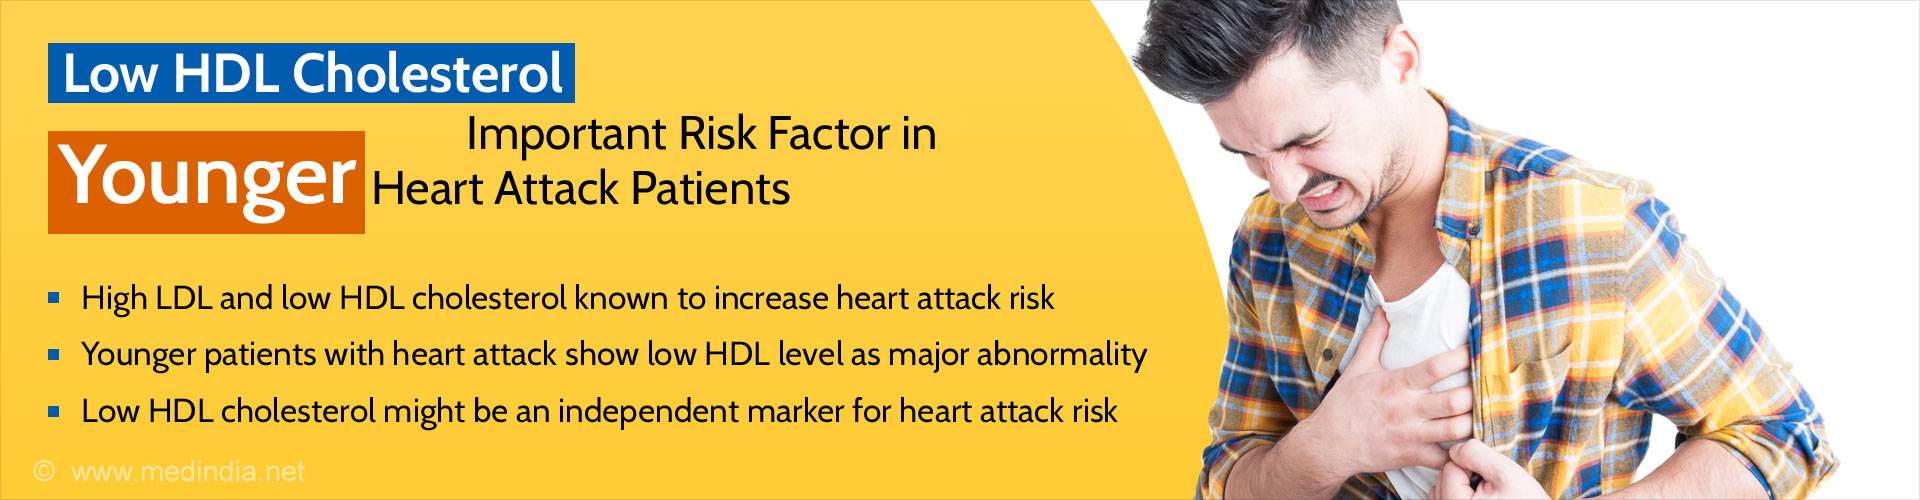 Low HDL Cholesterol important risk factor for younger heart attack patients